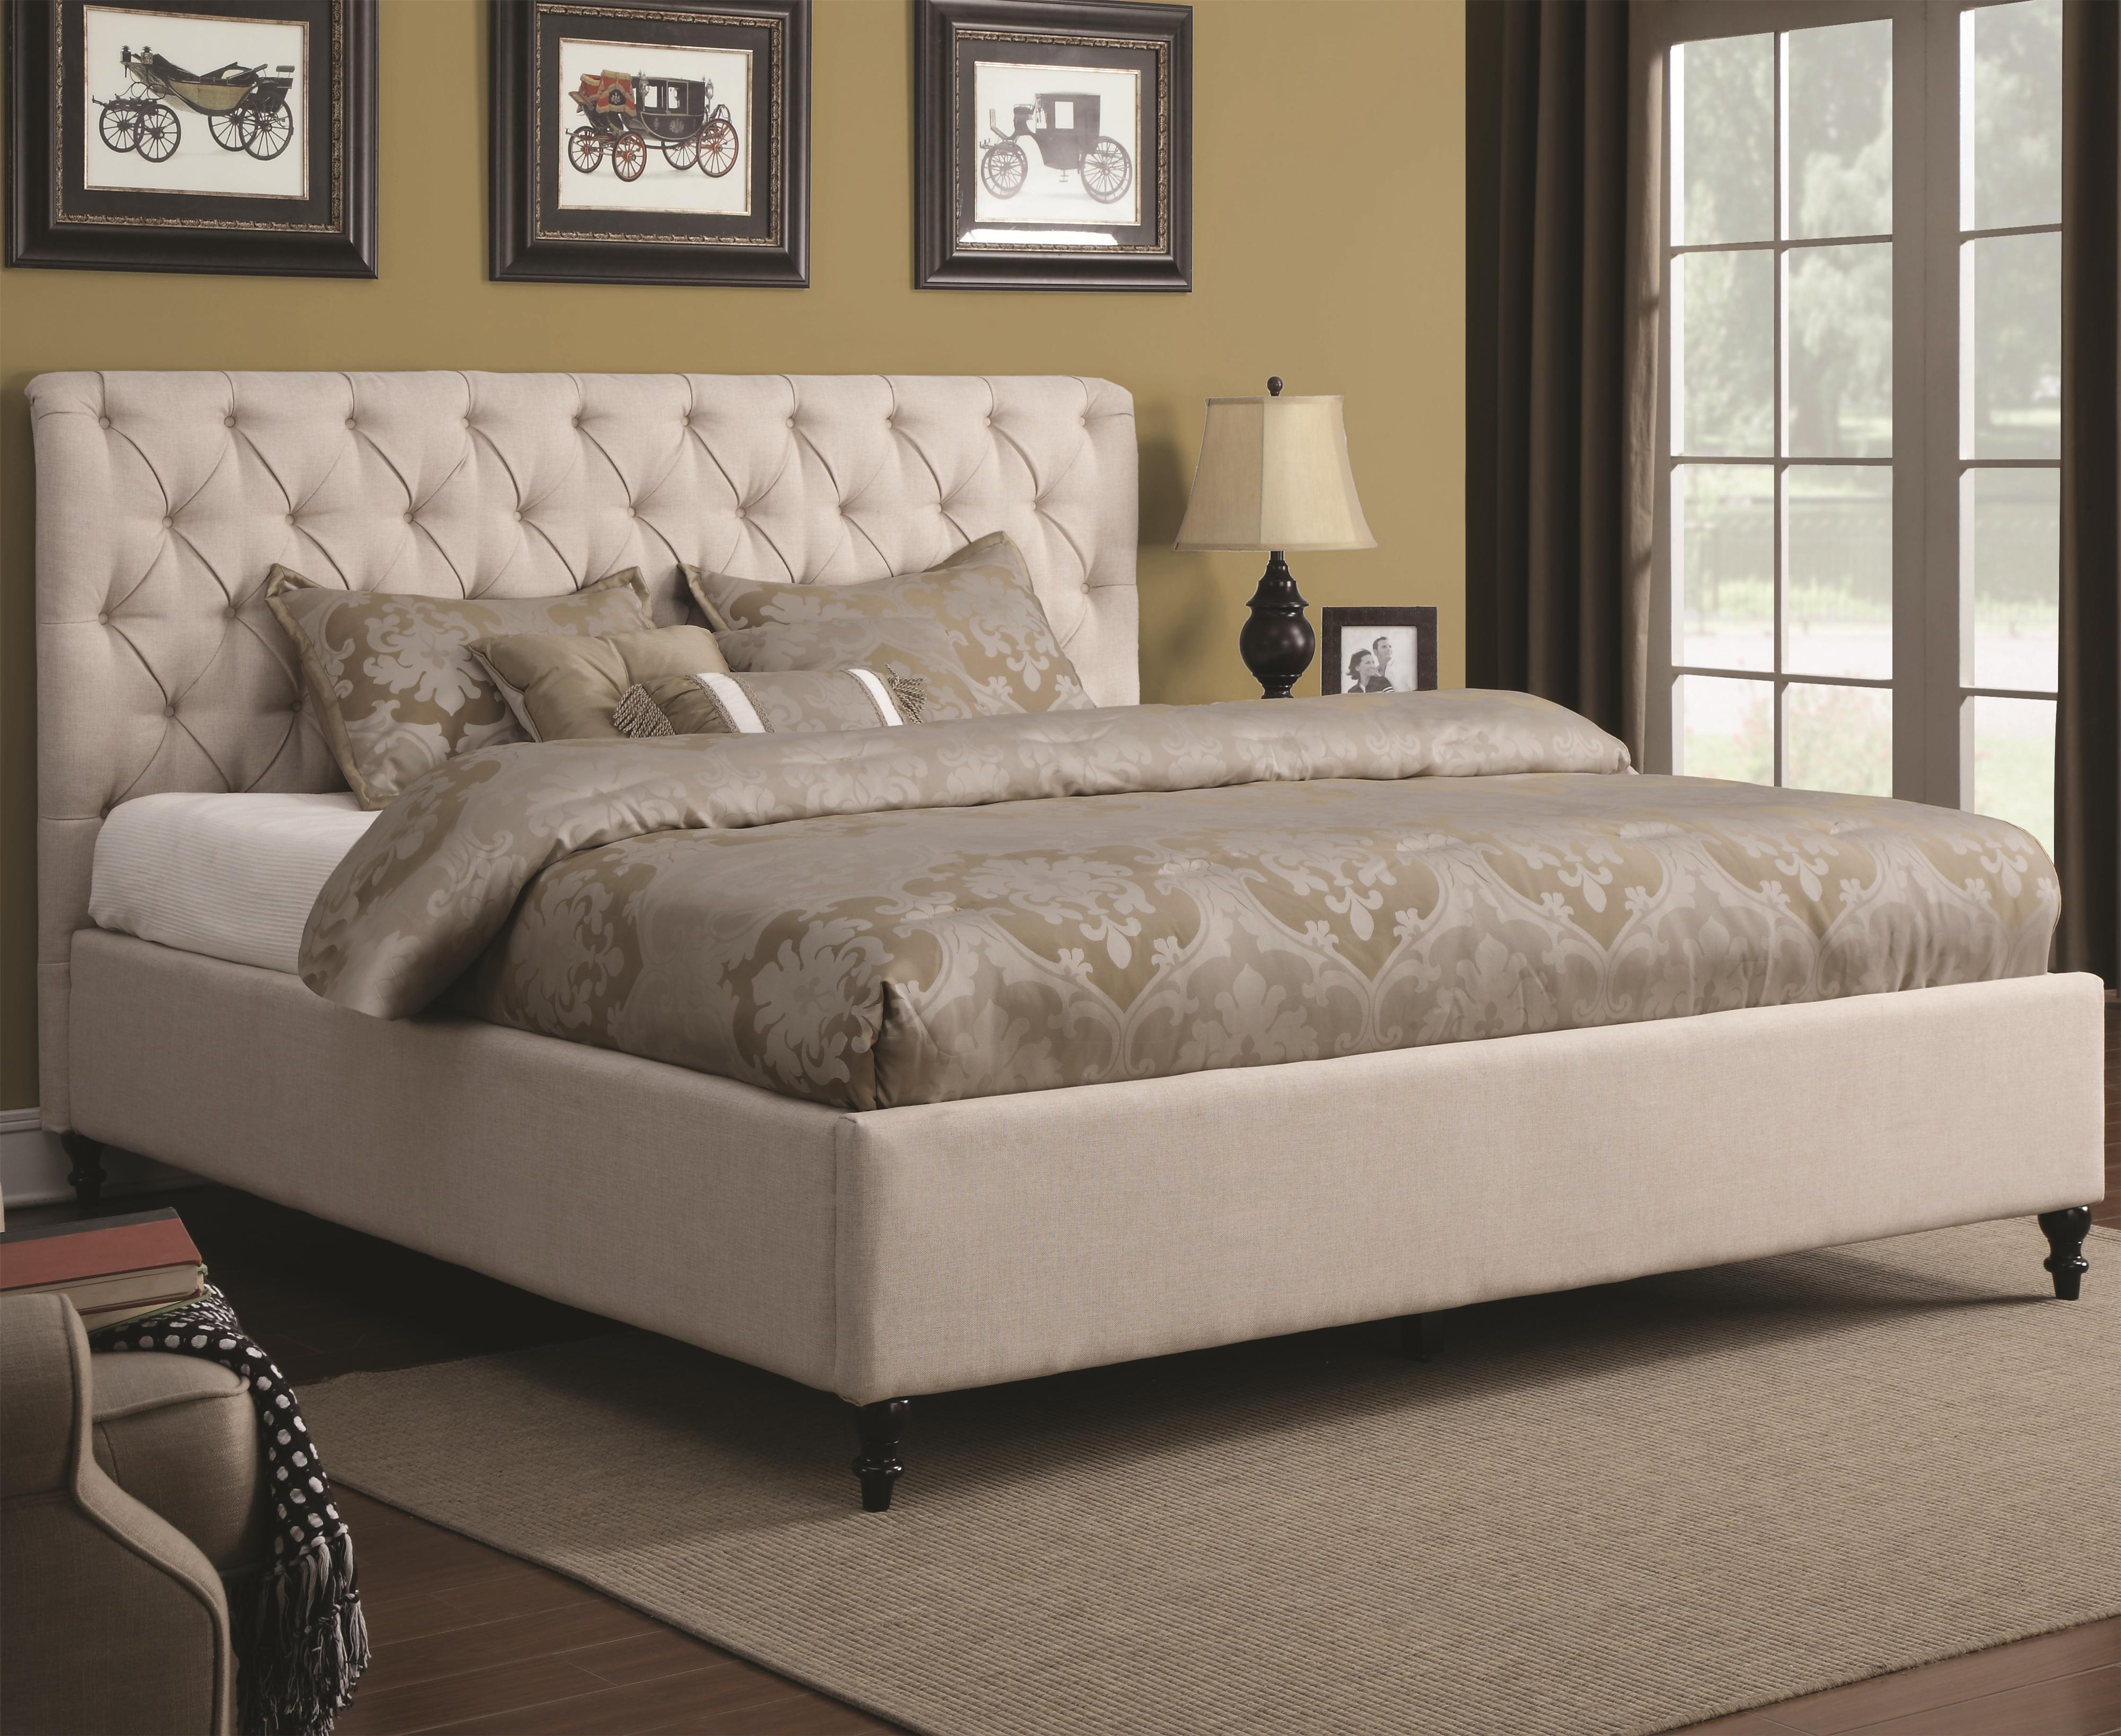 Upholstered Beds California King Upholstered Bed With